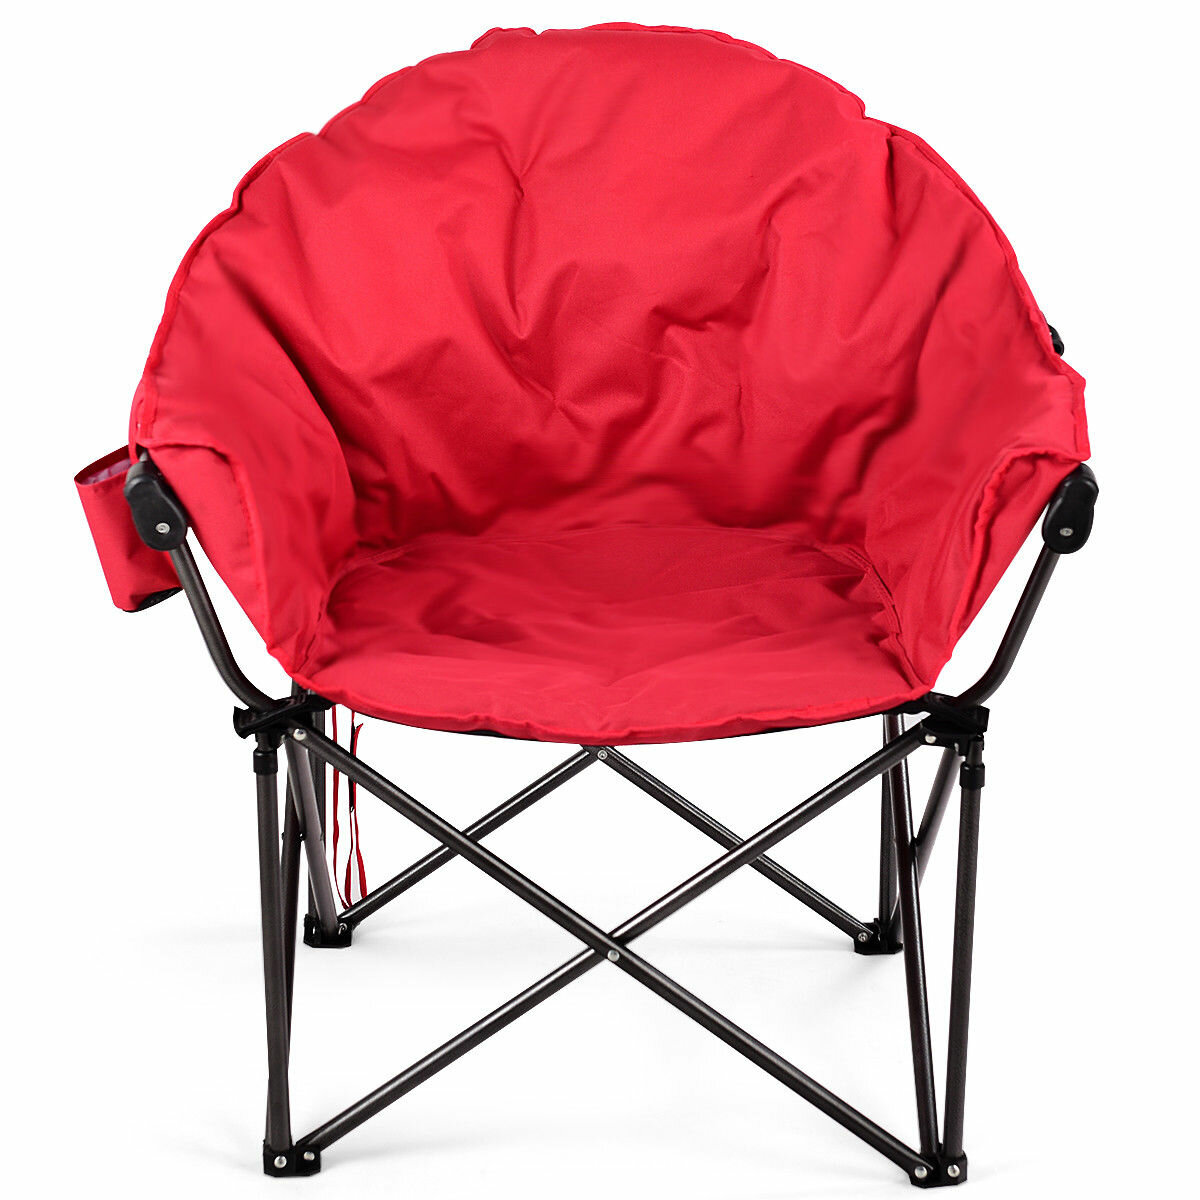 Magnificent Freeport Park Cheshire Oversized Moon Folding Camping Chair Dailytribune Chair Design For Home Dailytribuneorg